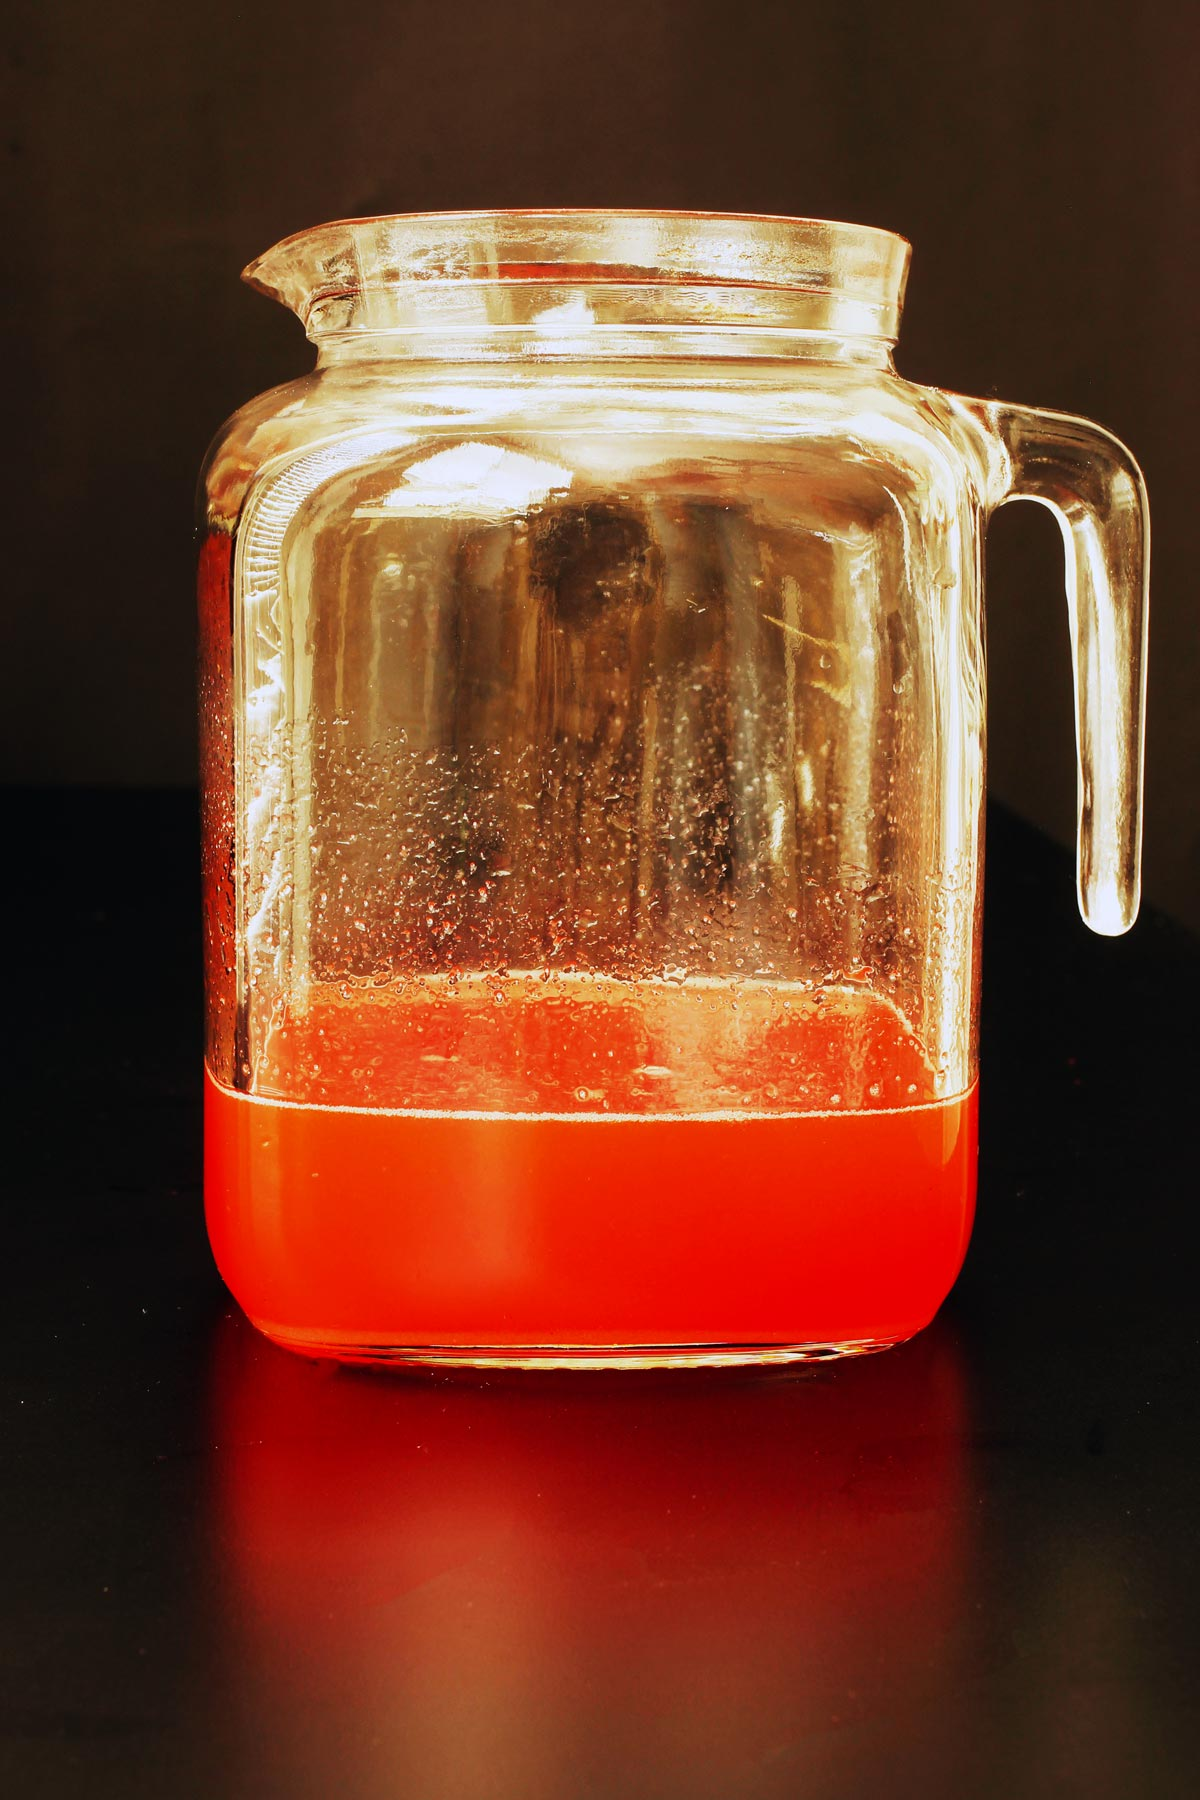 juices and sugar combined in pitcher